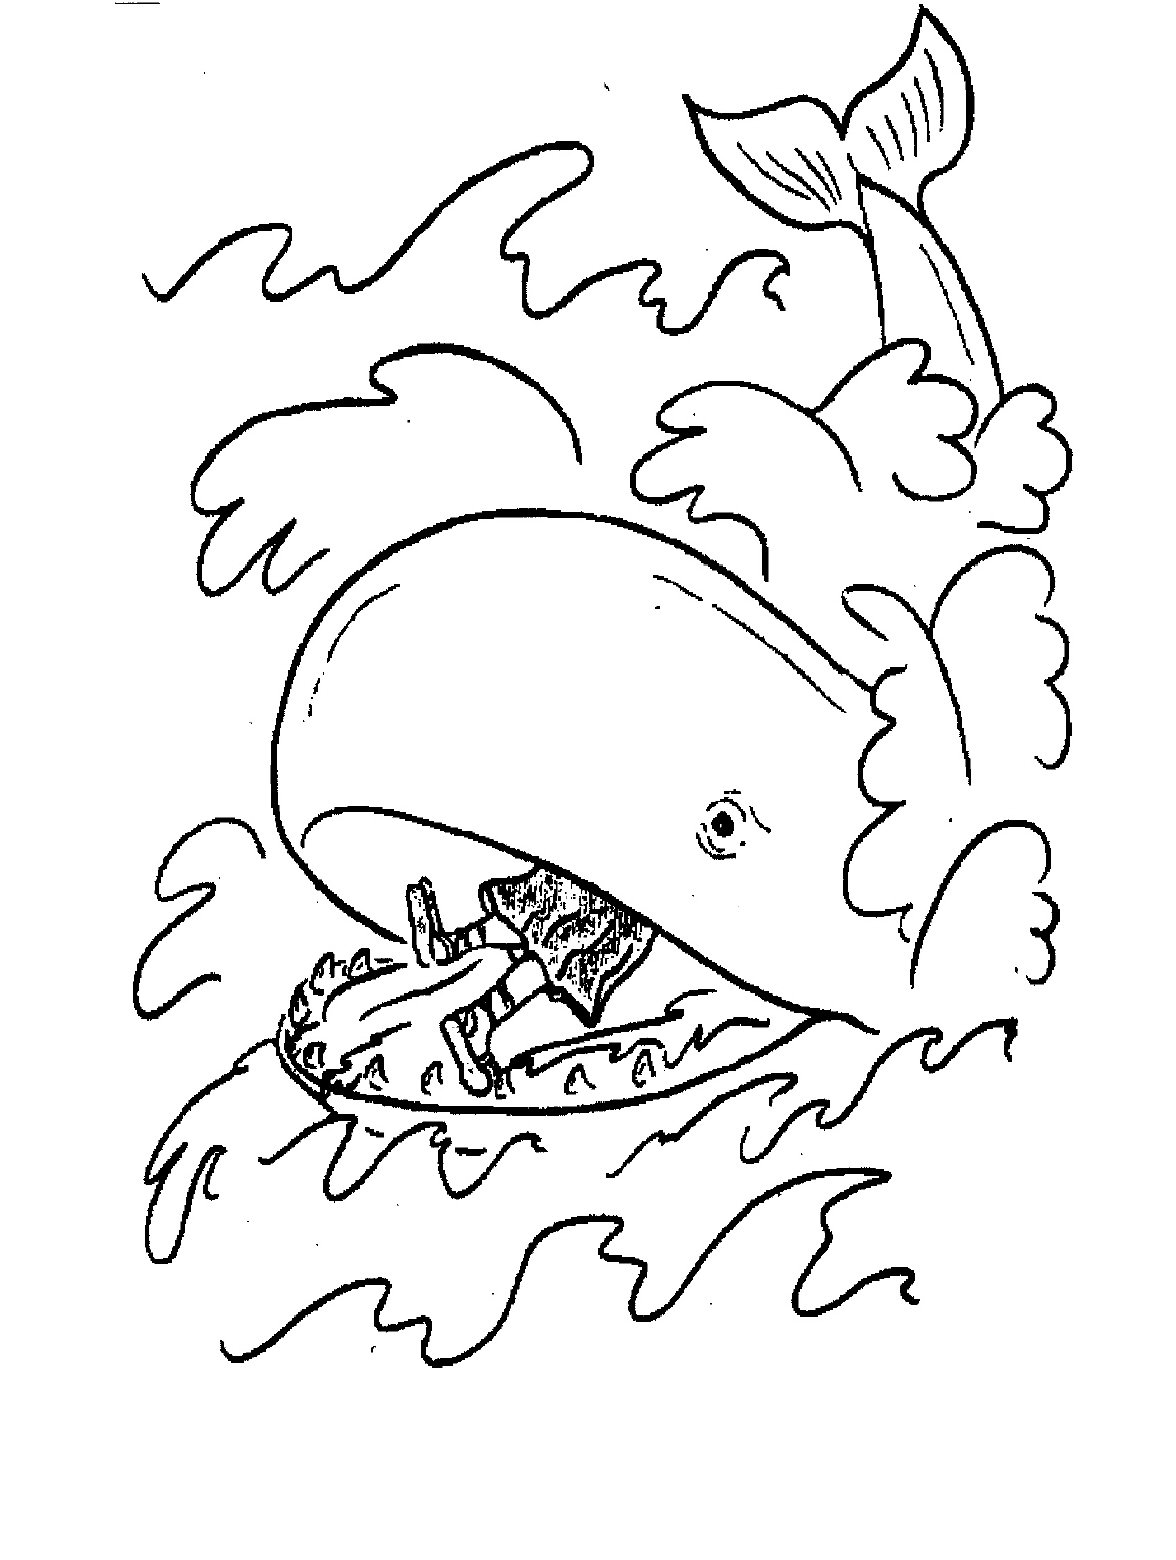 Jonah Coloring Pages : jonah, coloring, pages, Printable, Jonah, Whale, Coloring, Pages